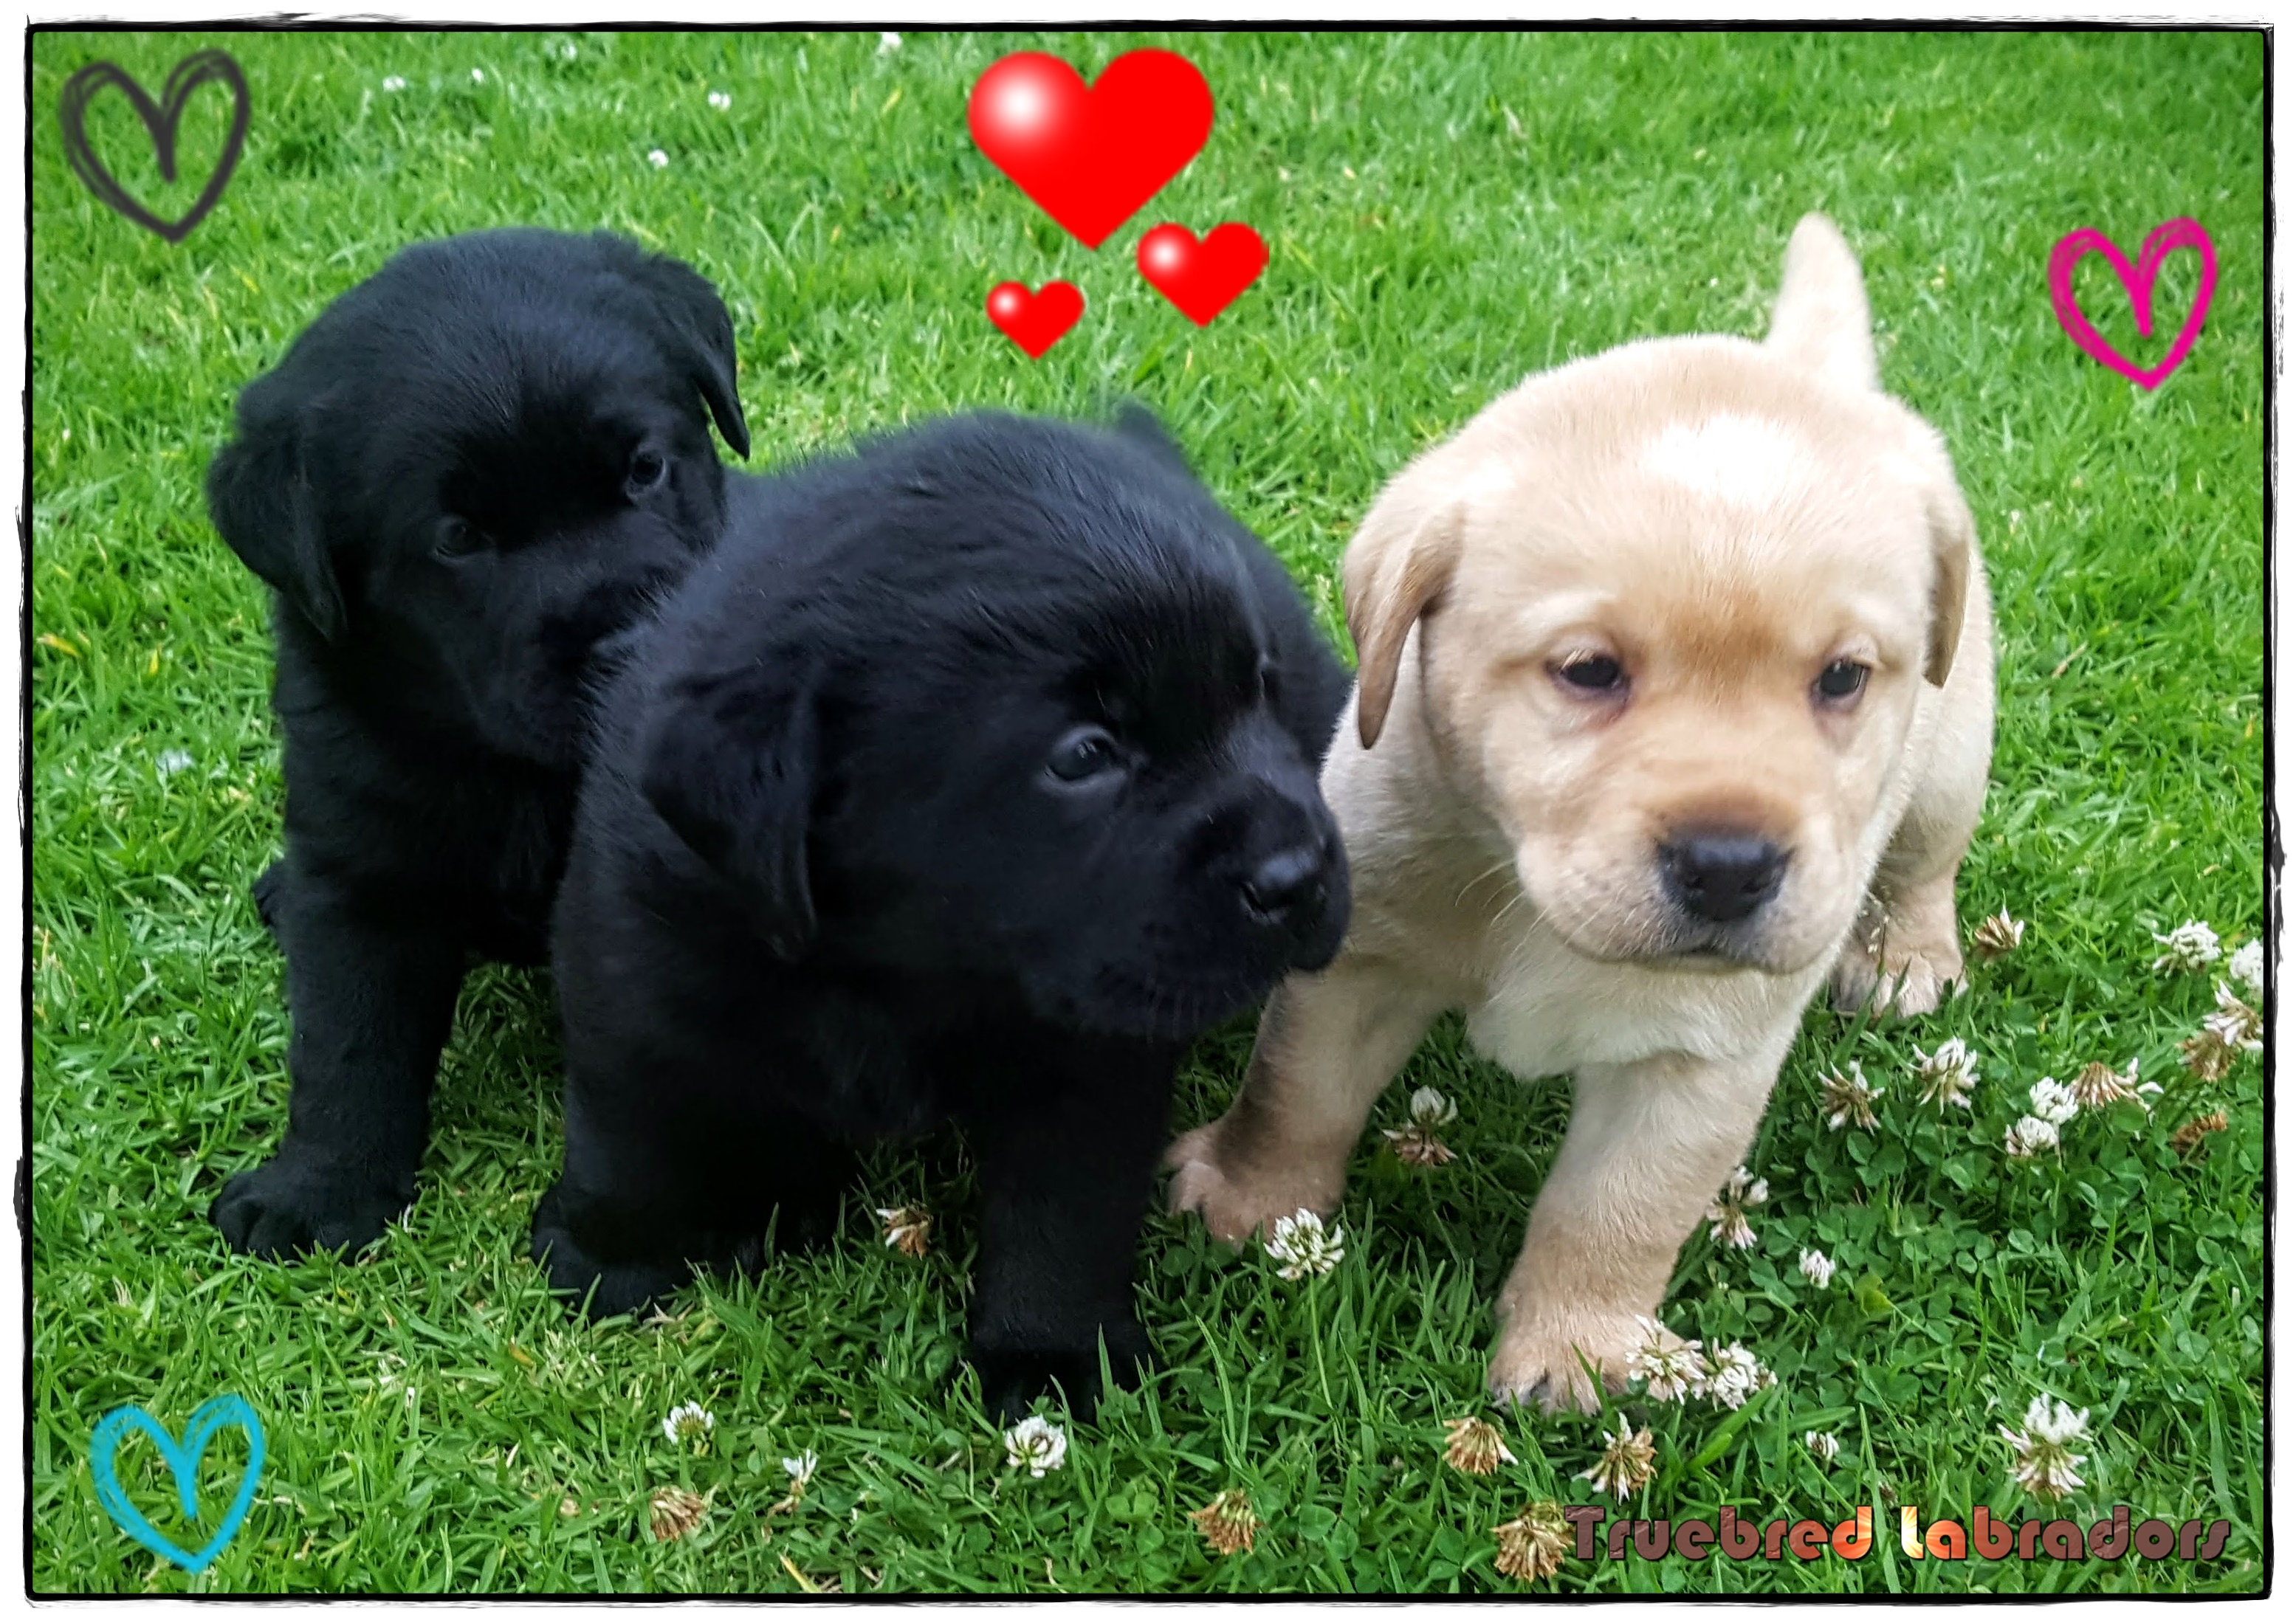 Black and yellow Labrador puppies by Truebred